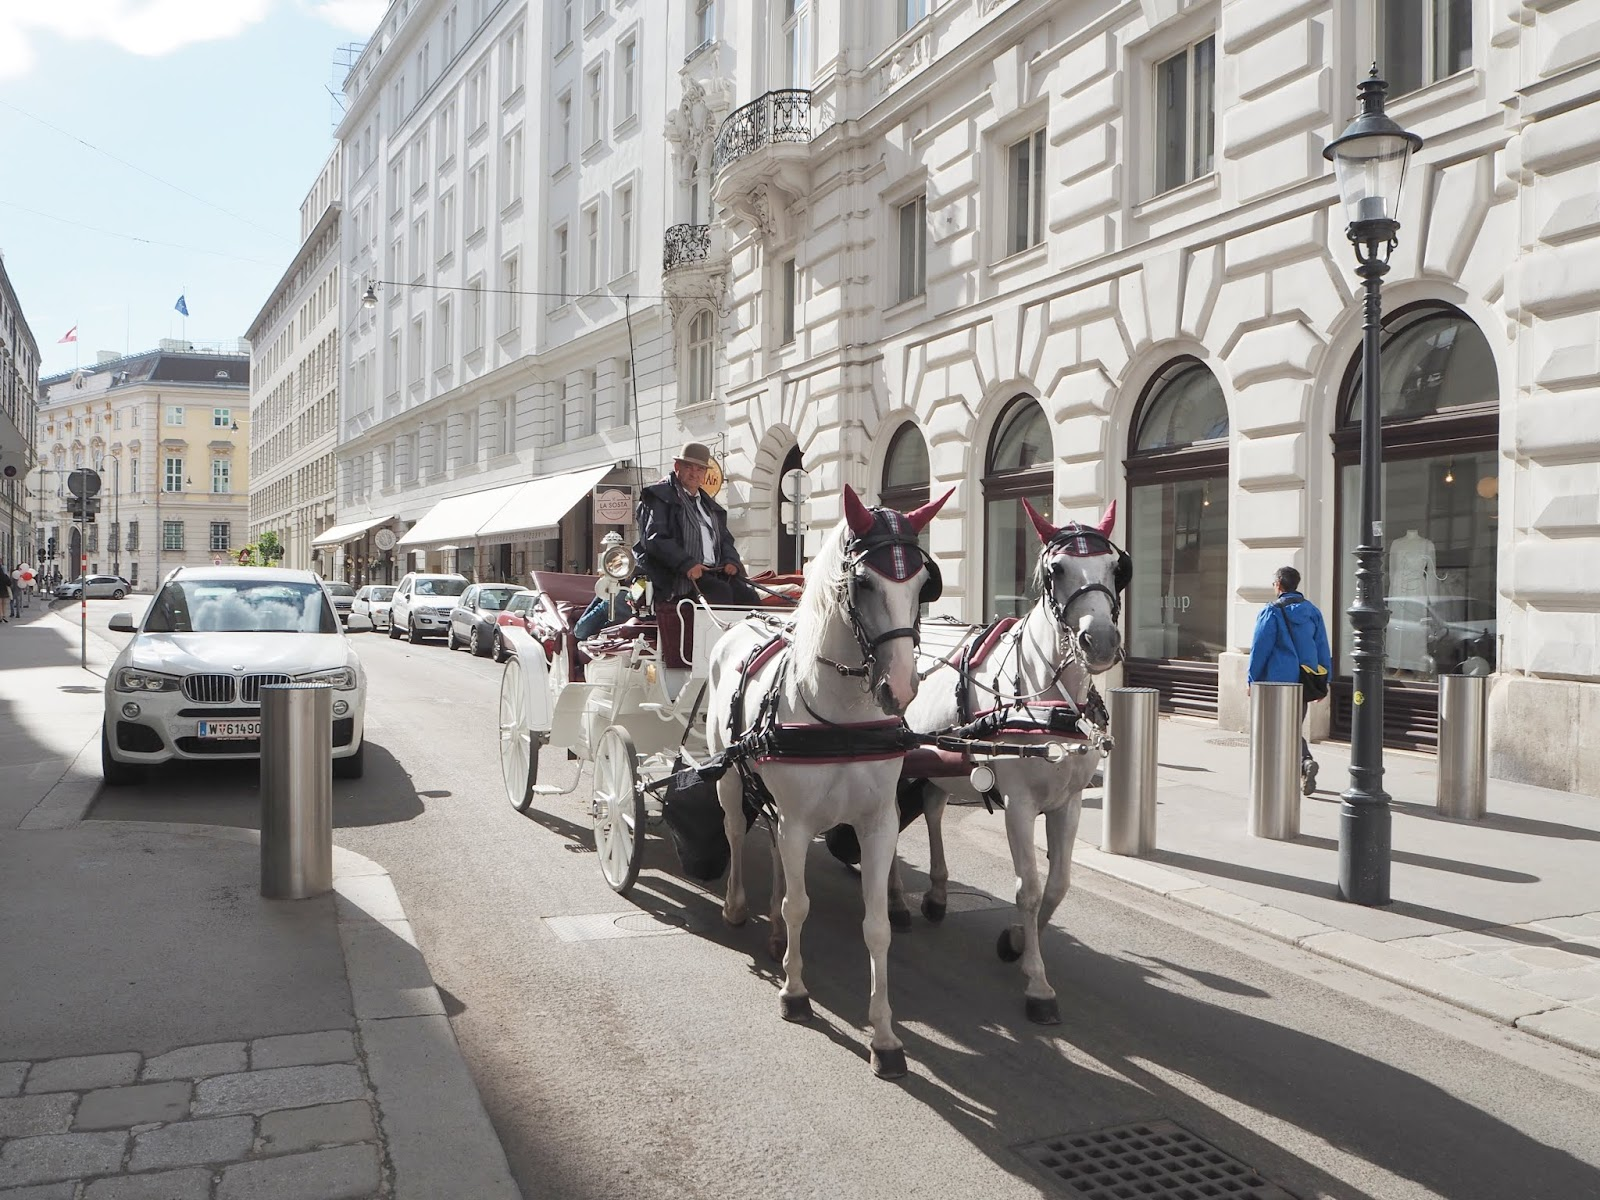 vienna city of horses